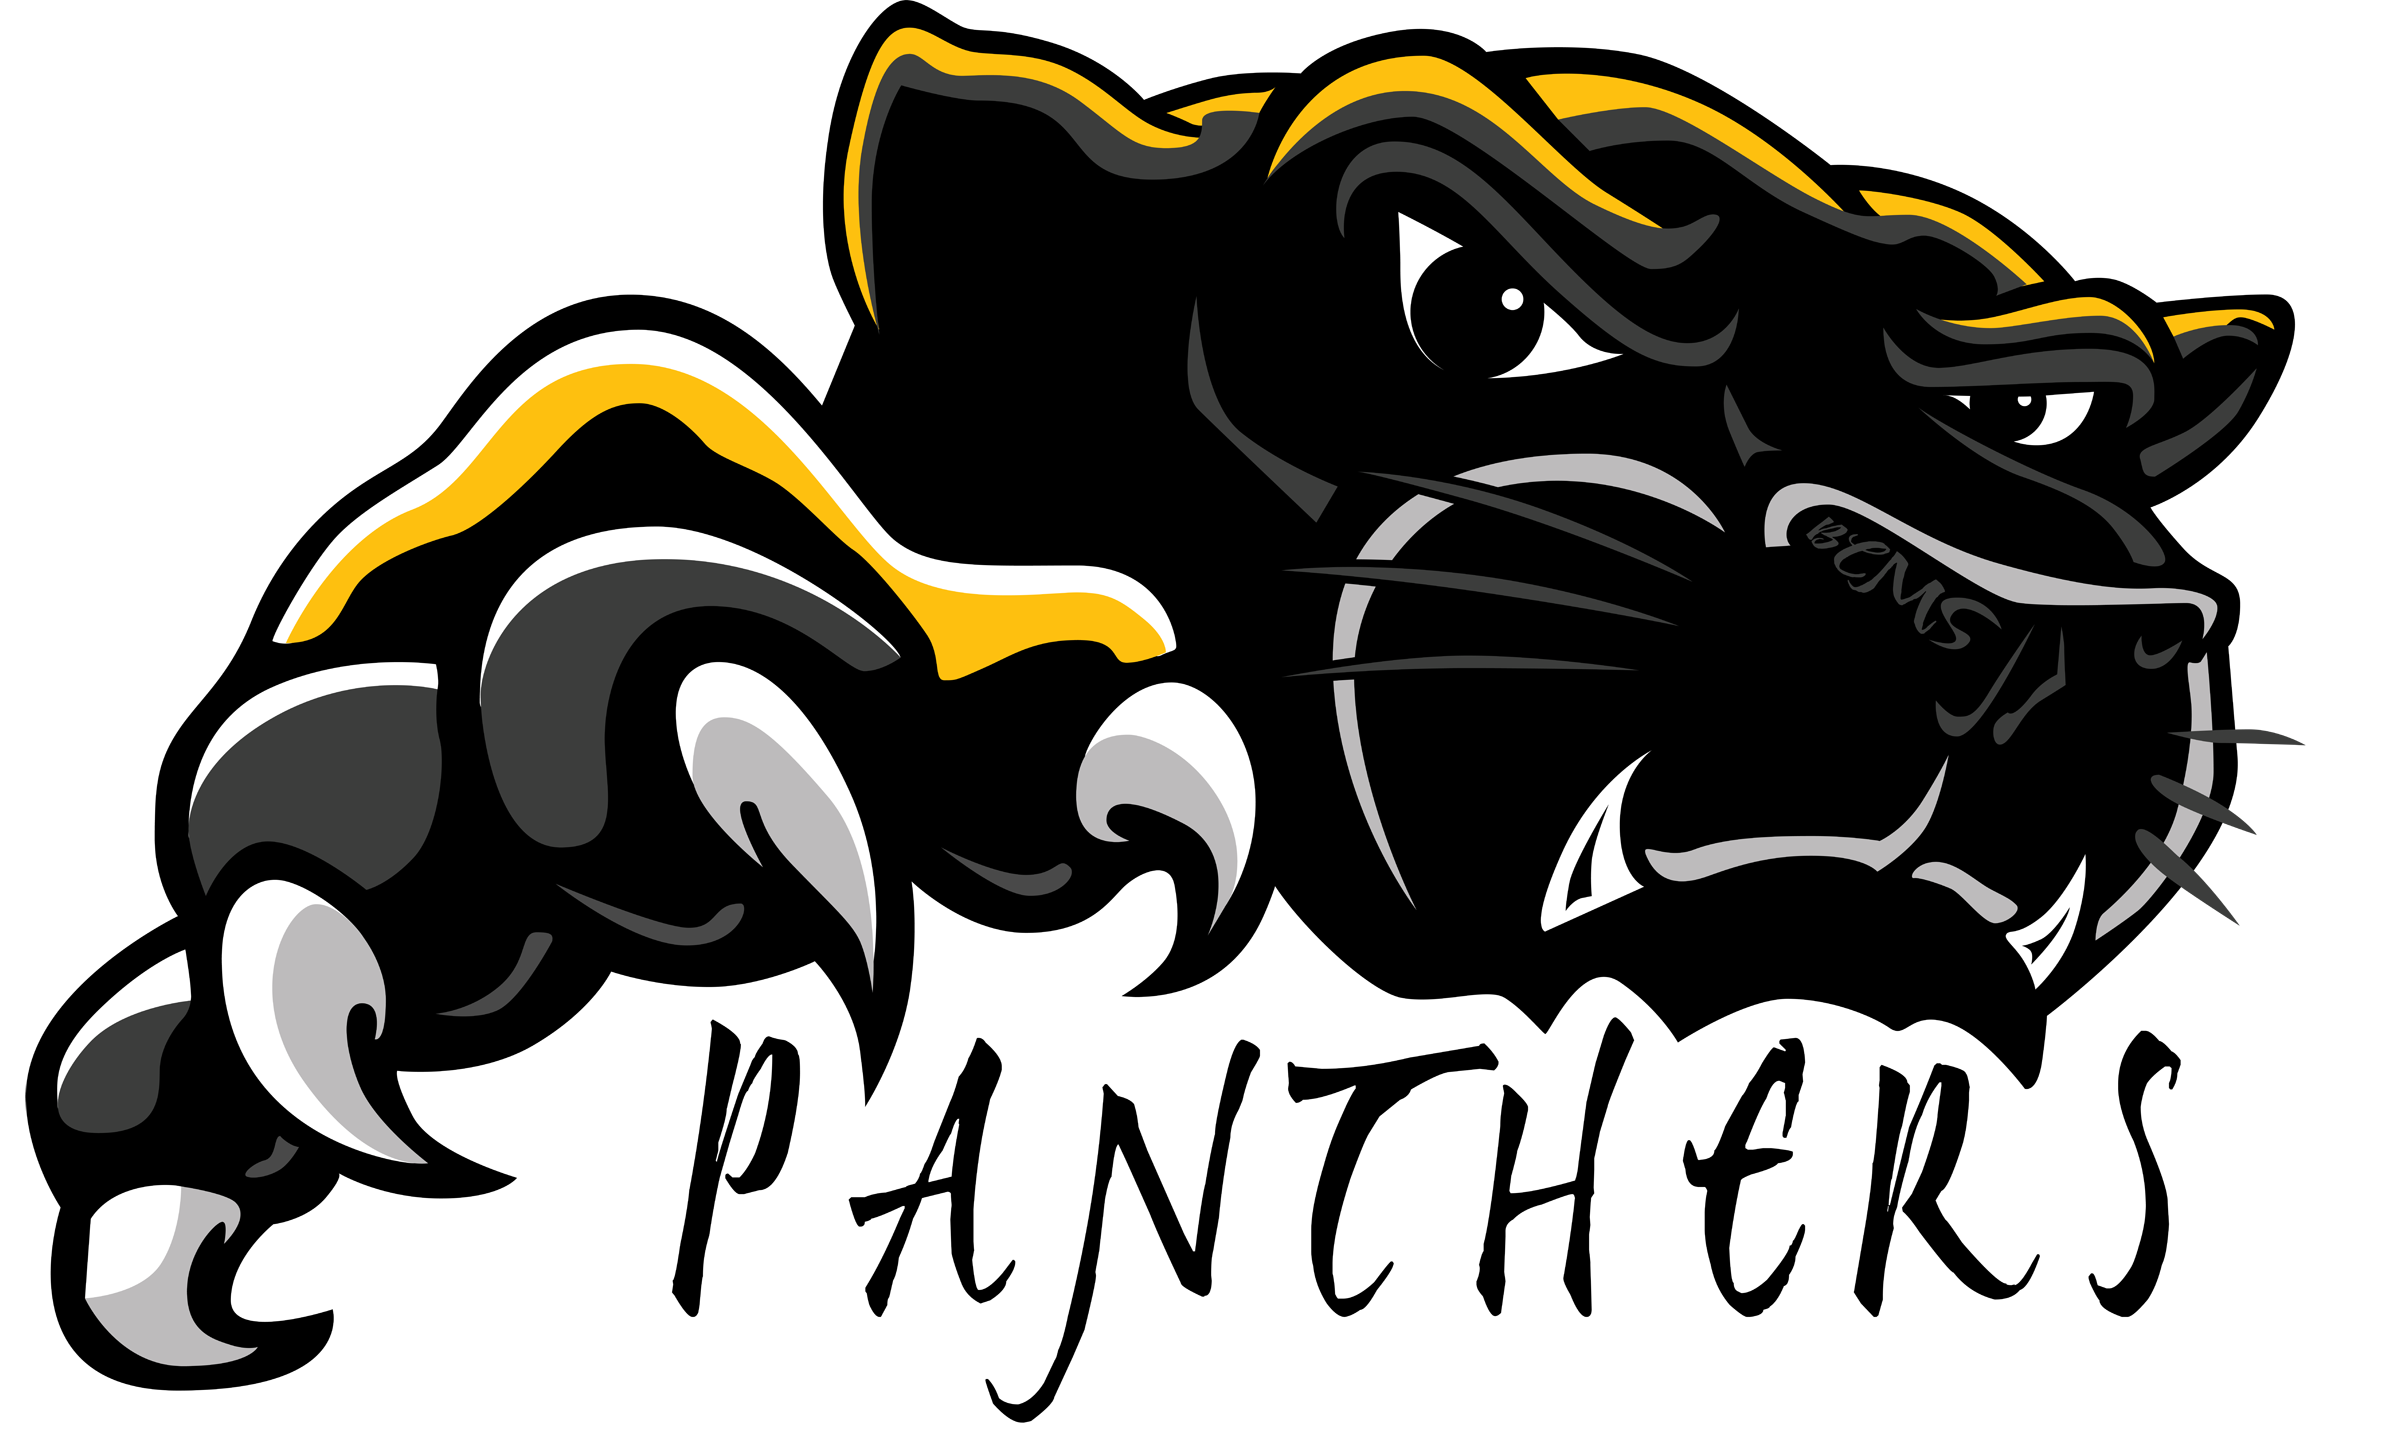 Panthers basketball clipart graphic transparent library Free Panther Clipart Pictures - Clipartix | ANIMALS | Pinterest ... graphic transparent library